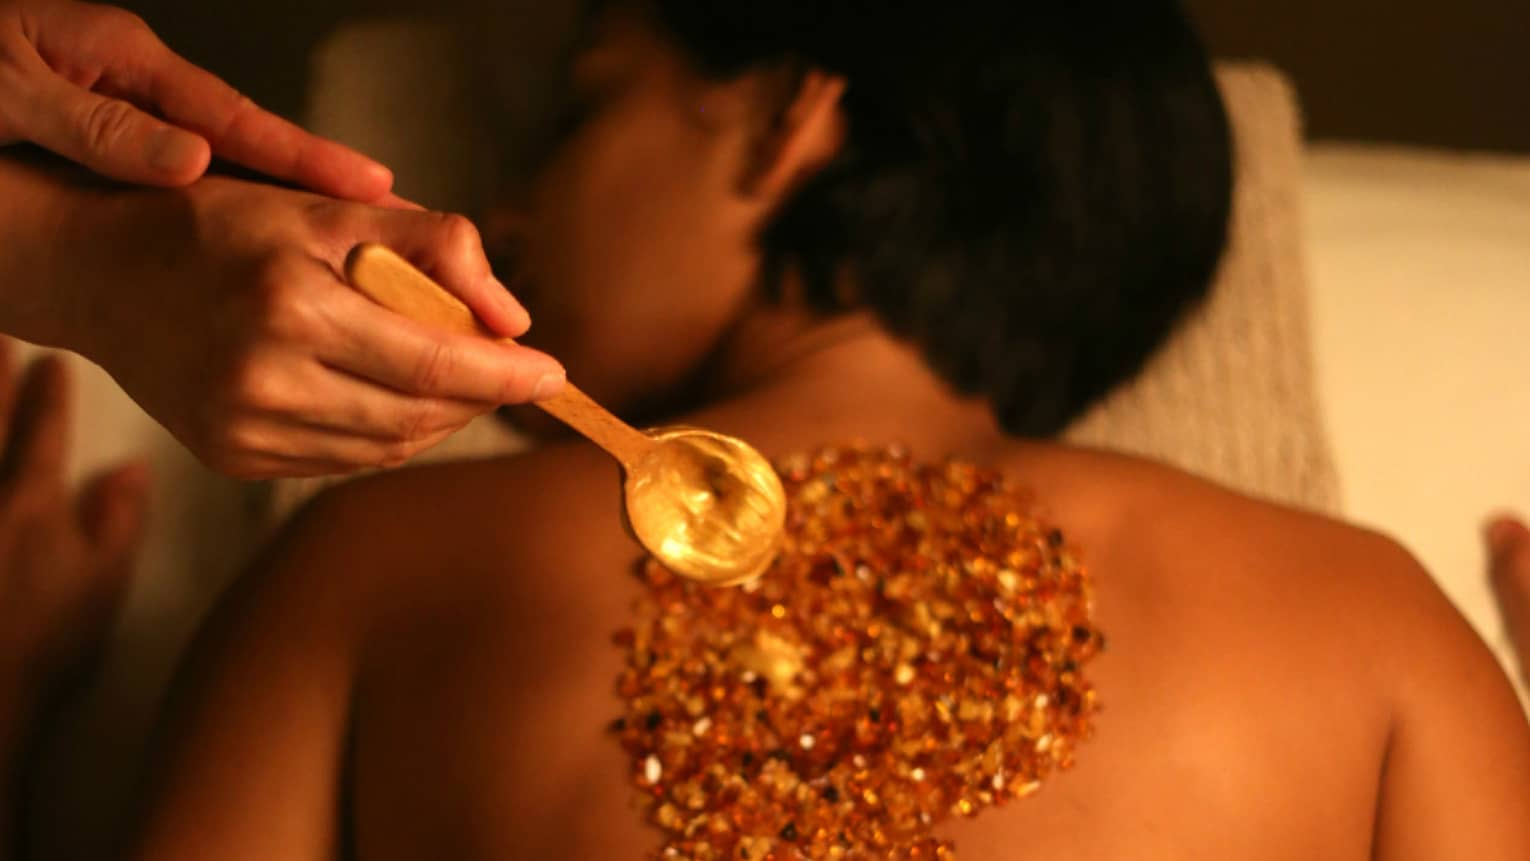 Spa staff holds wood spoon over woman's back covered with crystal spa rub